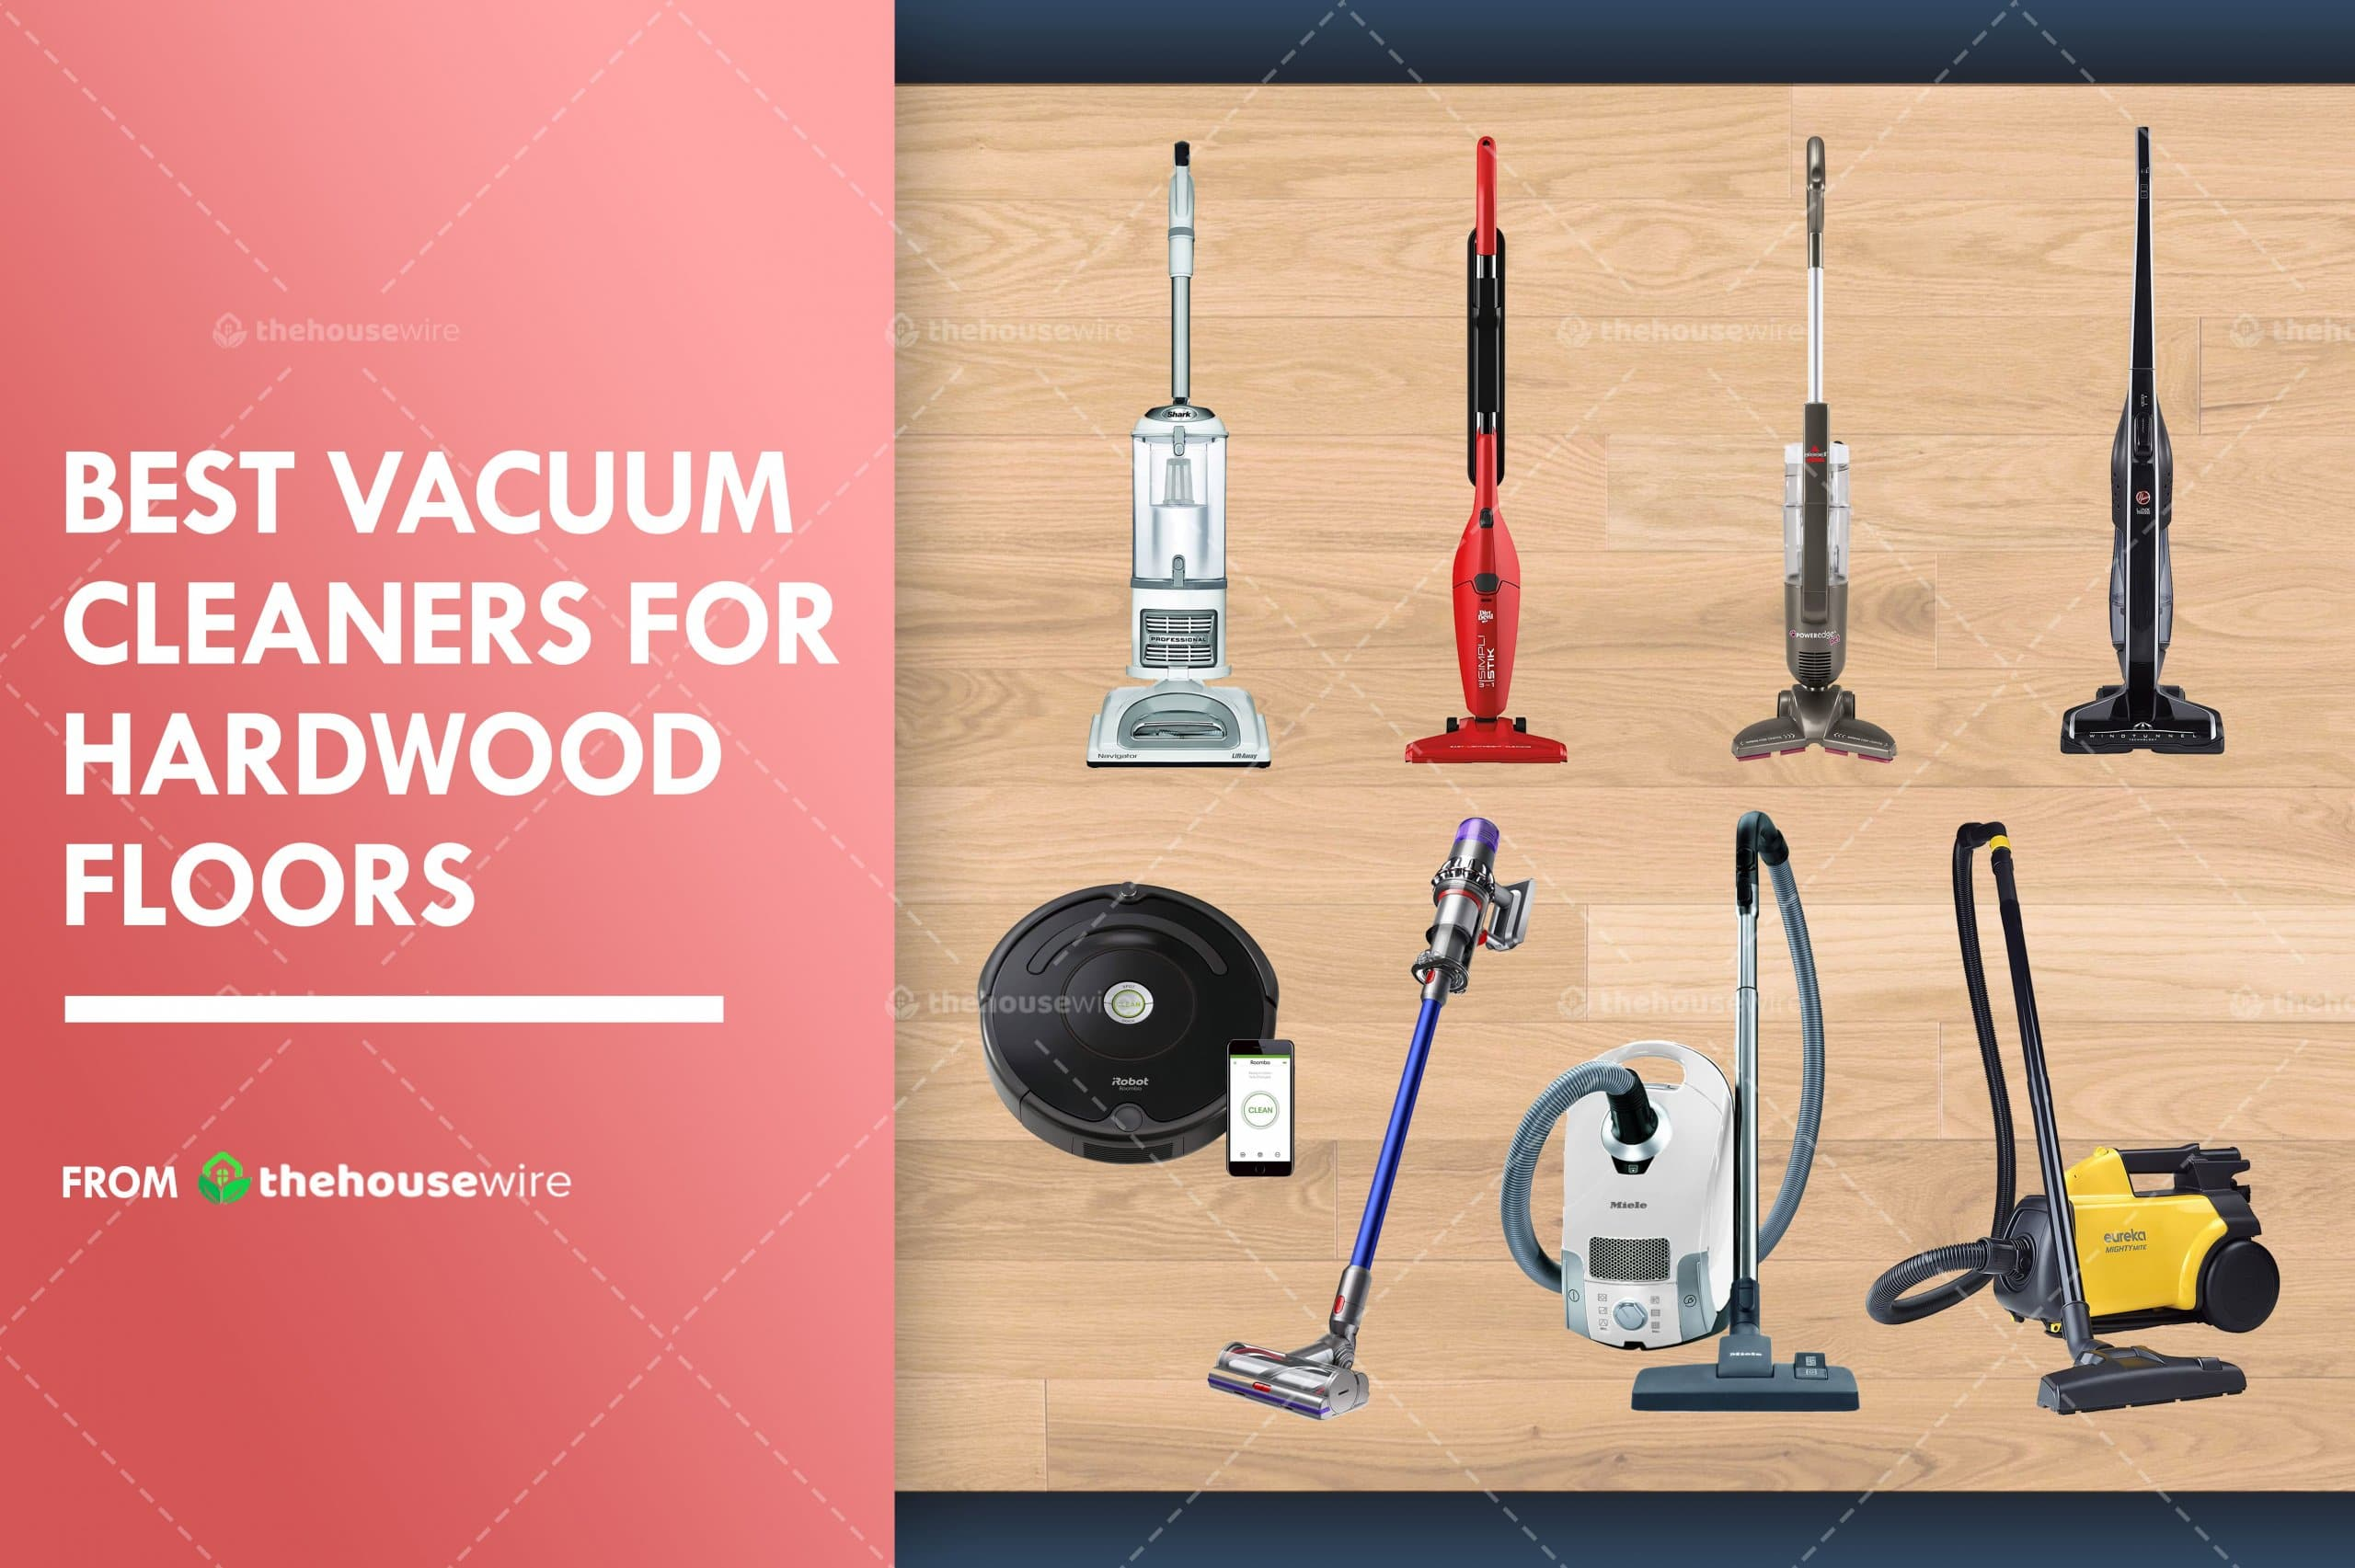 The 8 Best Vacuum Cleaners For Hardwood Floors of 2021